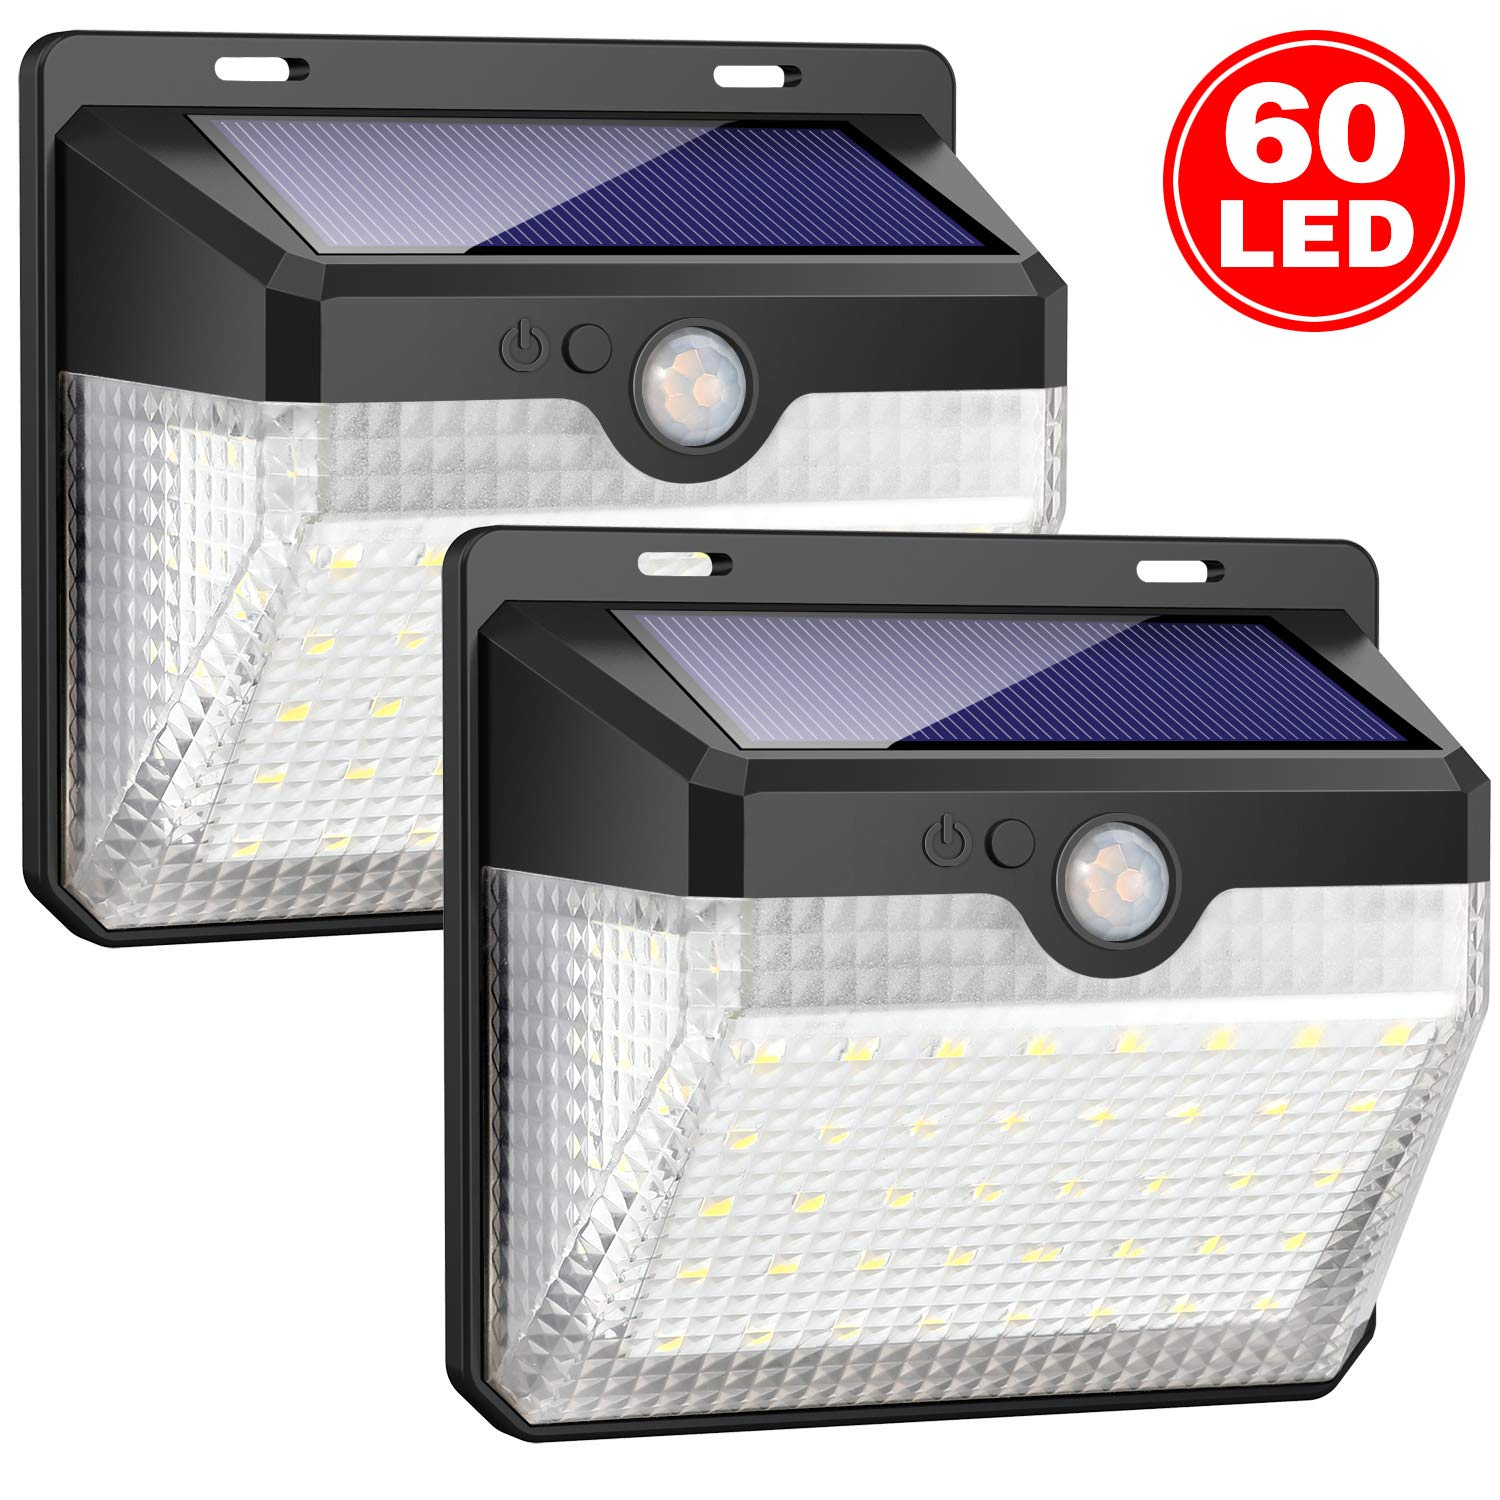 Solar Lights Outdoor [60 LEDs], Gixvdcu Solar Powered Motion Sensor Lights Waterproof Security Wireless Wall Lights with 270° Wide Angle for Outdoor, Garden, Patio Yard, Deck Garage, Fence (2 Pack)